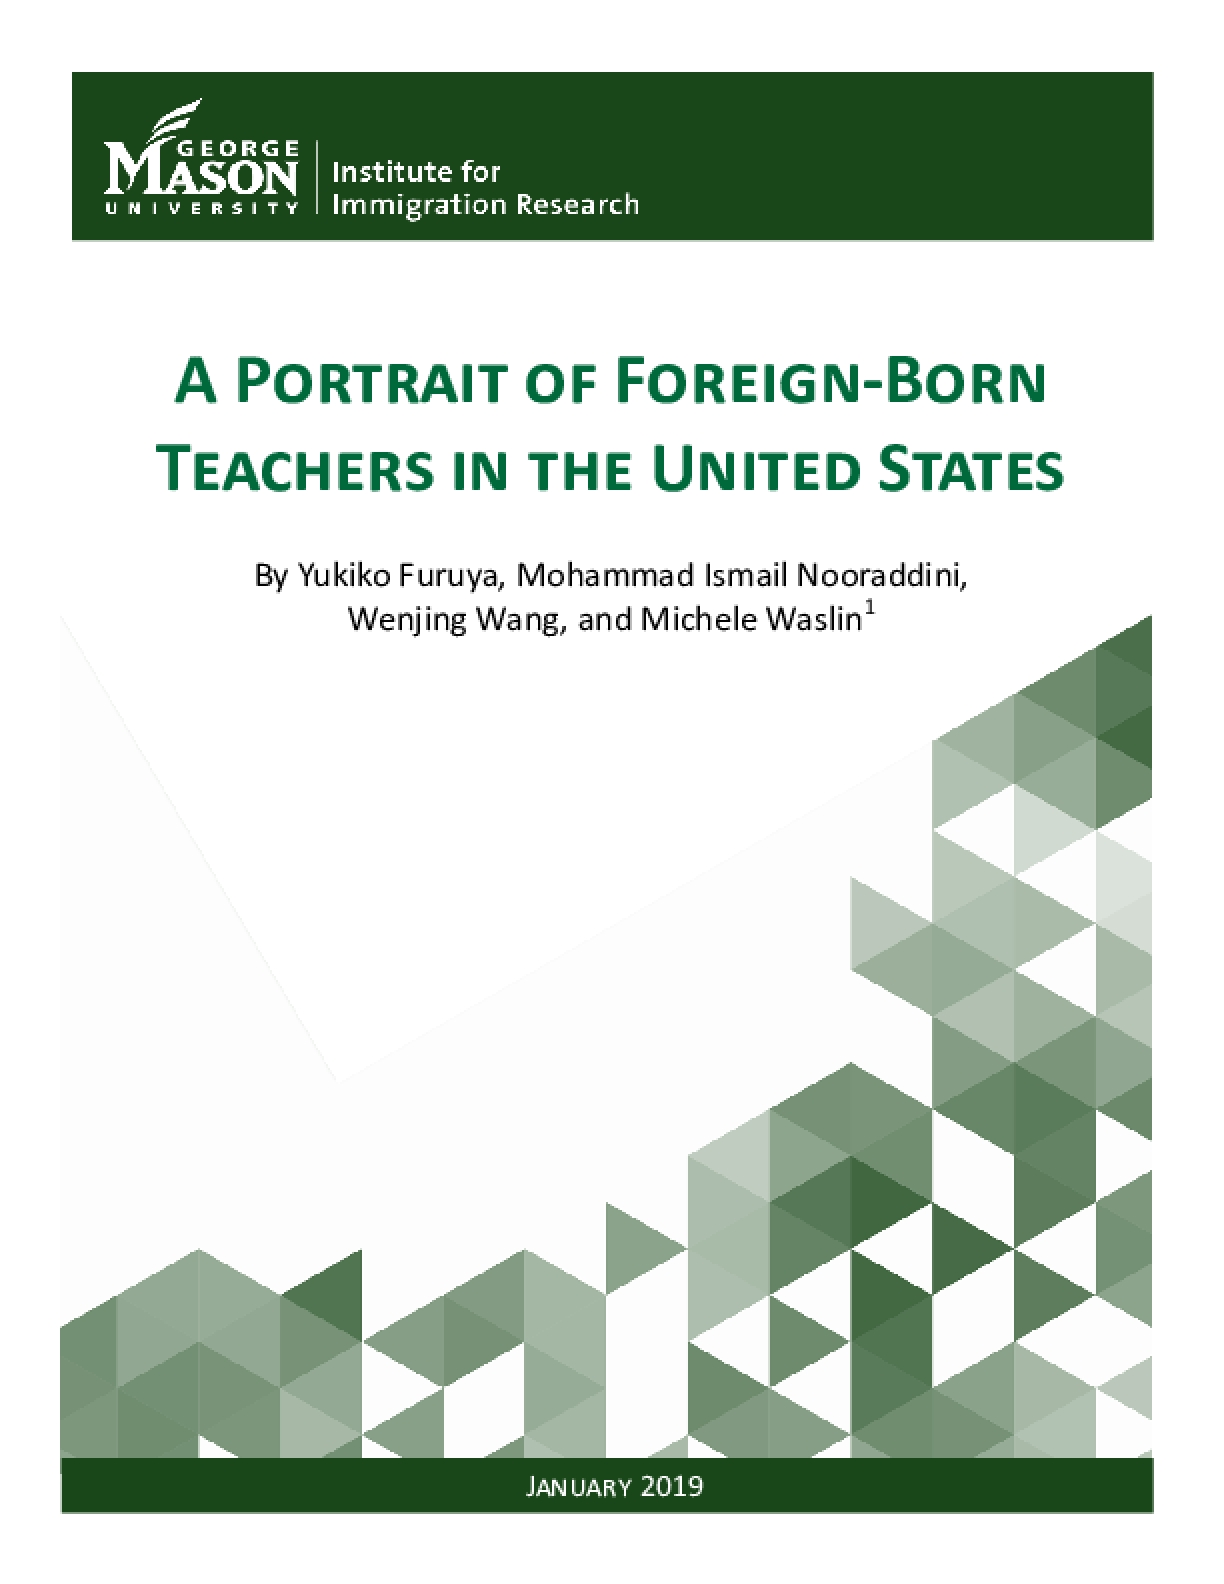 A Portrait of Foreign-Born Teachers in the United States